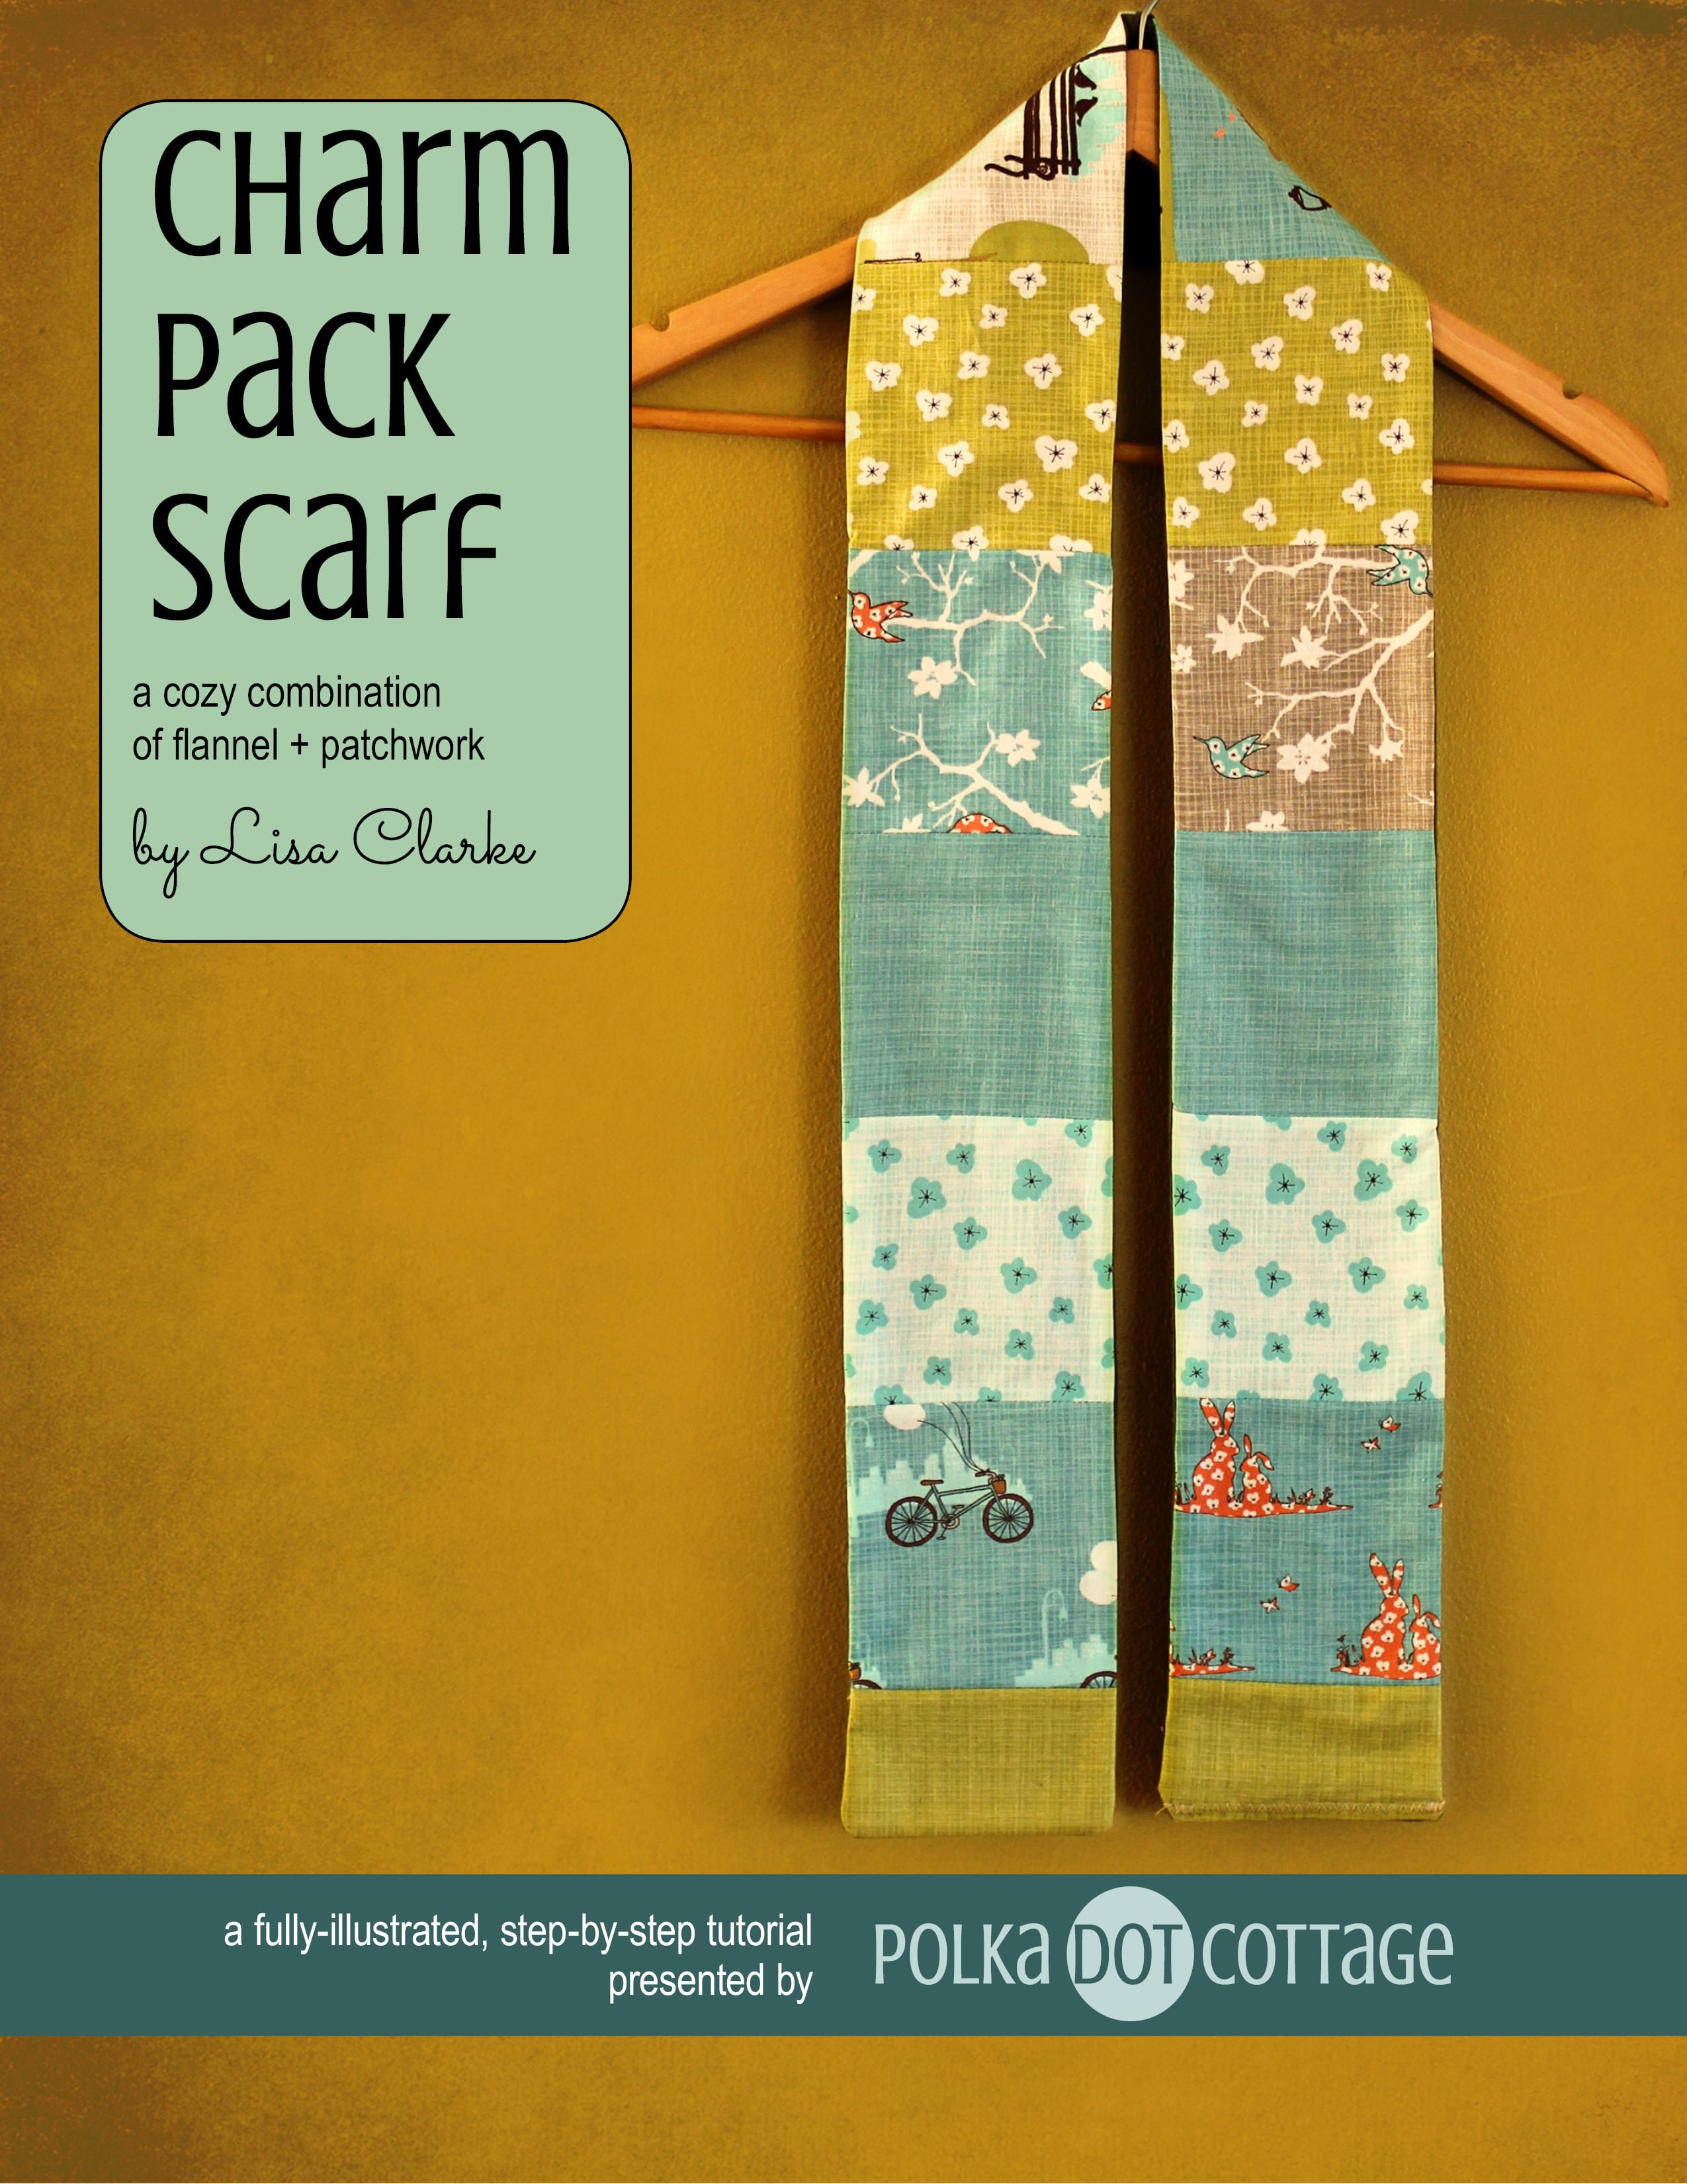 Charm Pack Scarf, an eBook tutorial from Polka Dot Cottage